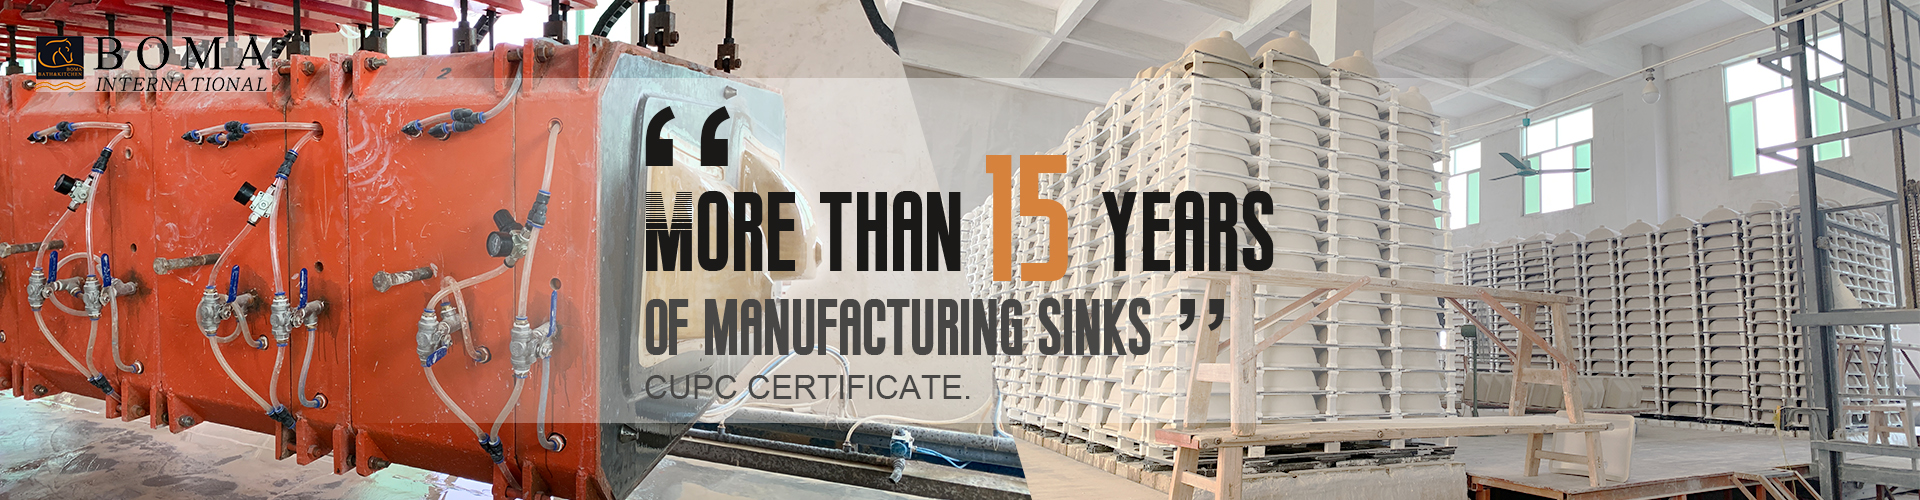 More than 15 years of manufacturing sinks